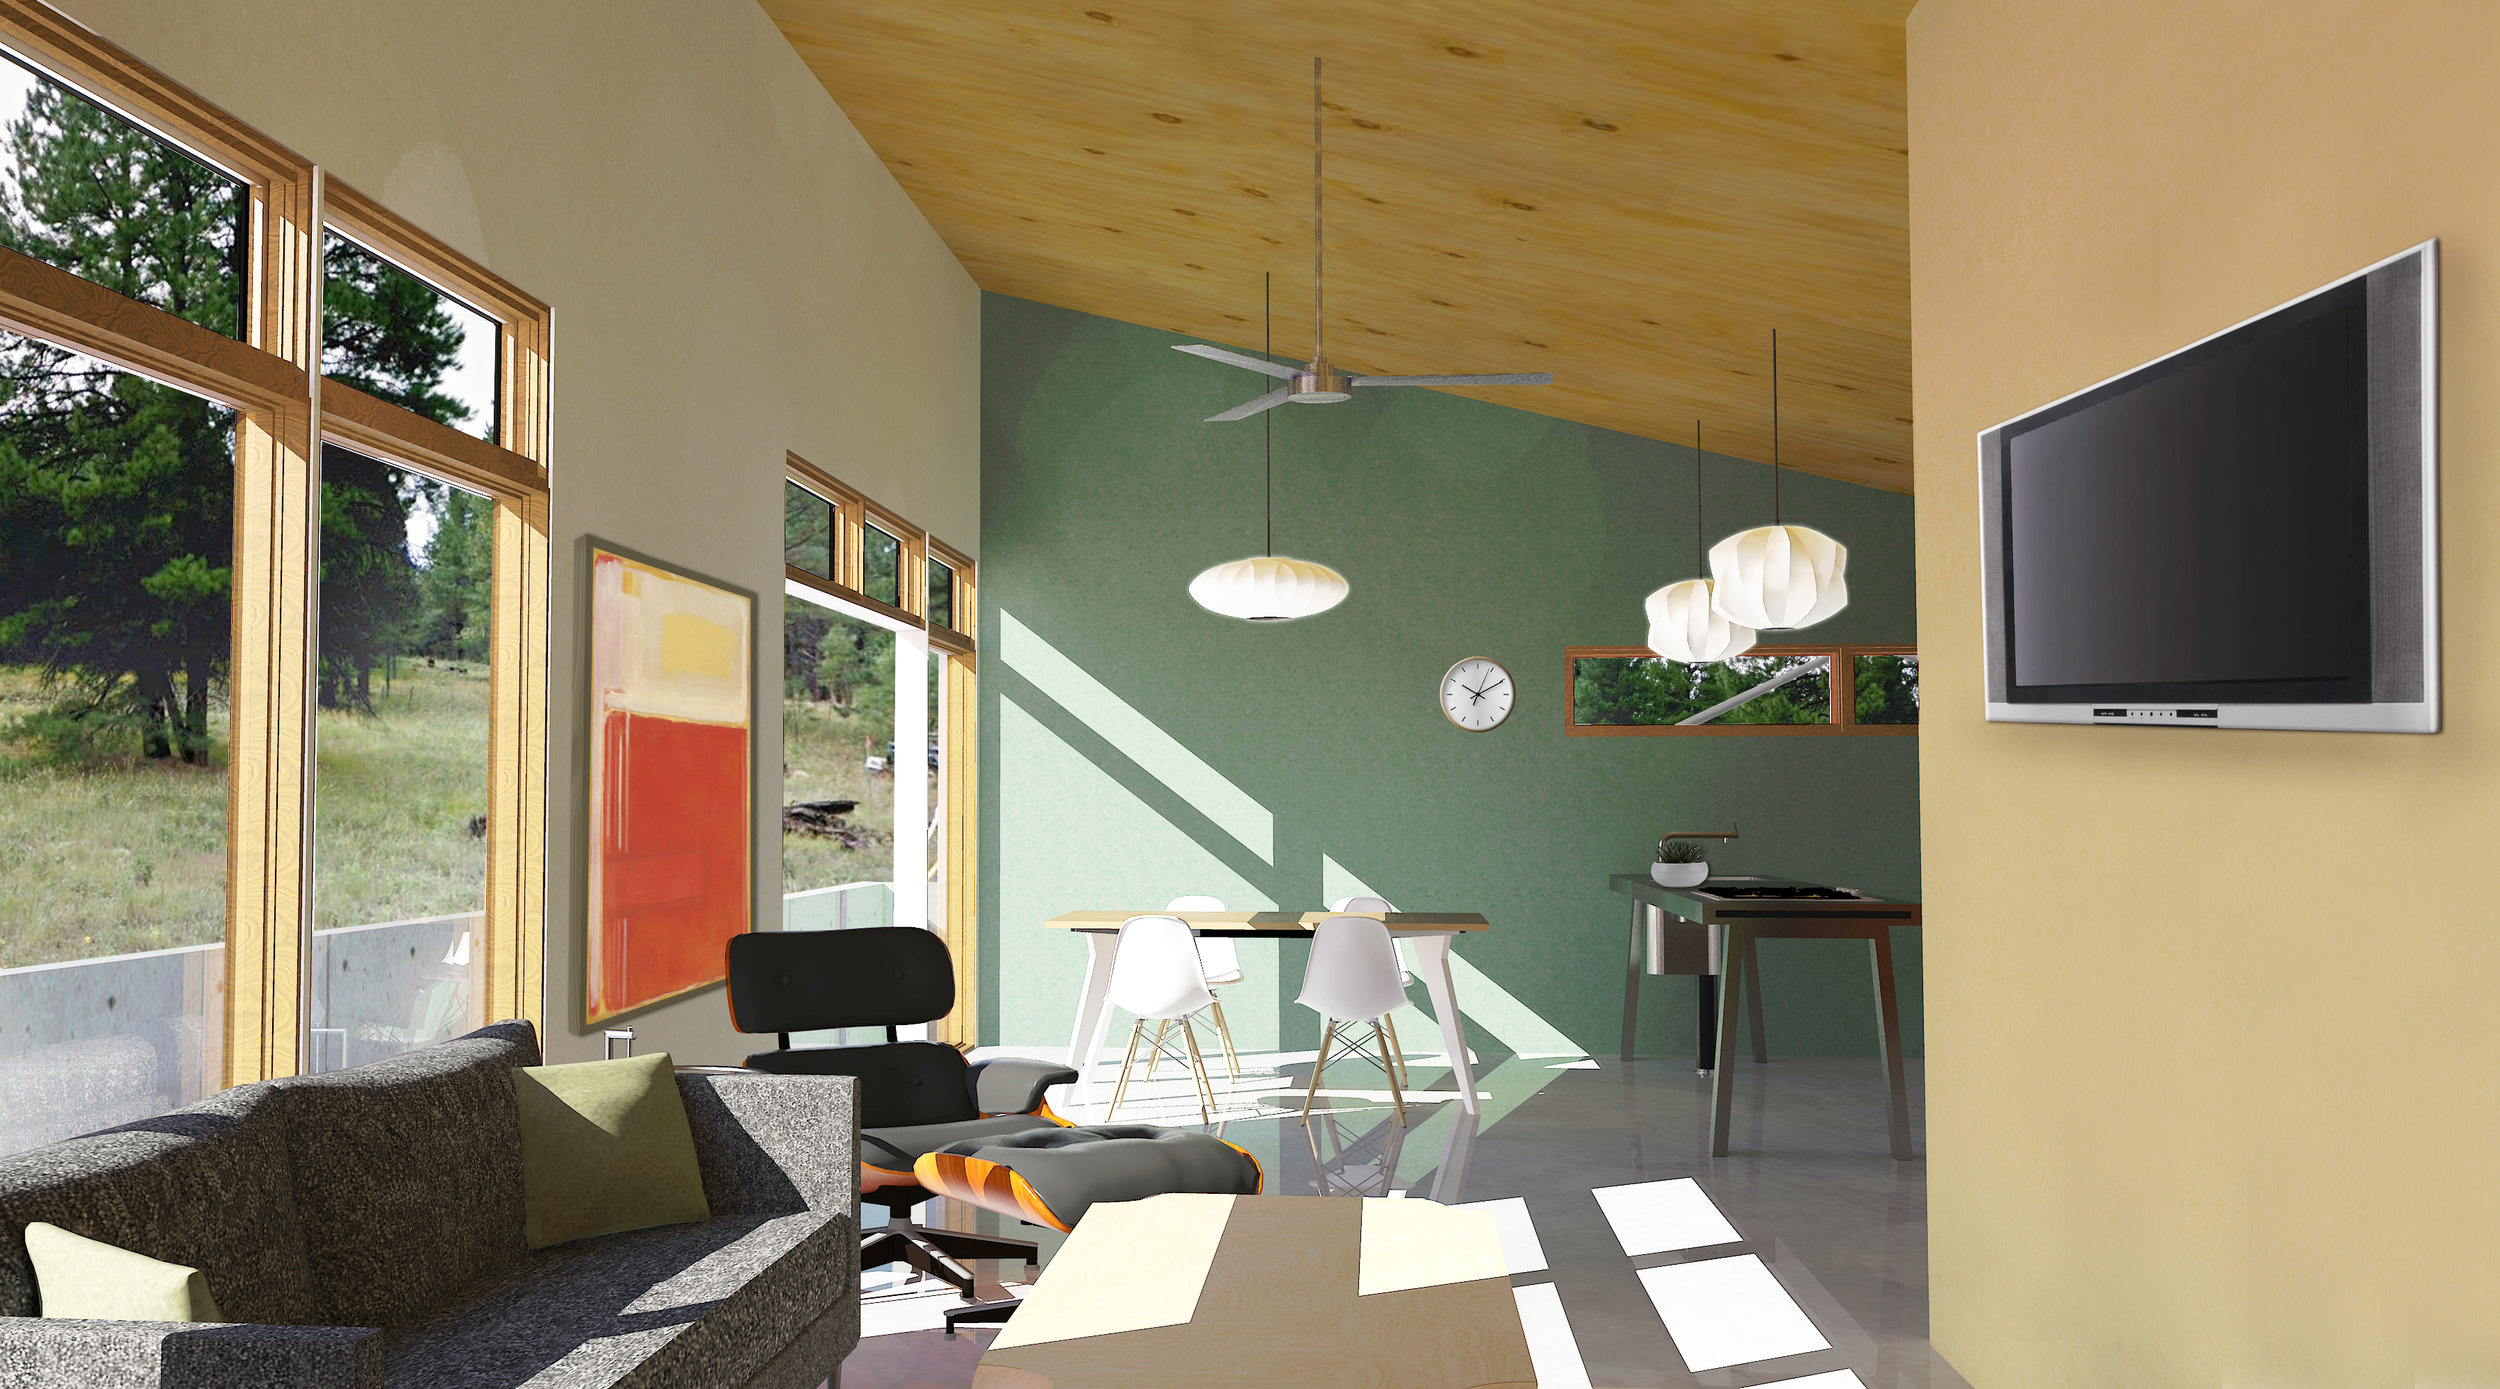 1603_Building_RENDERS_Intr Perspective of Dining Room_Larger.jpg